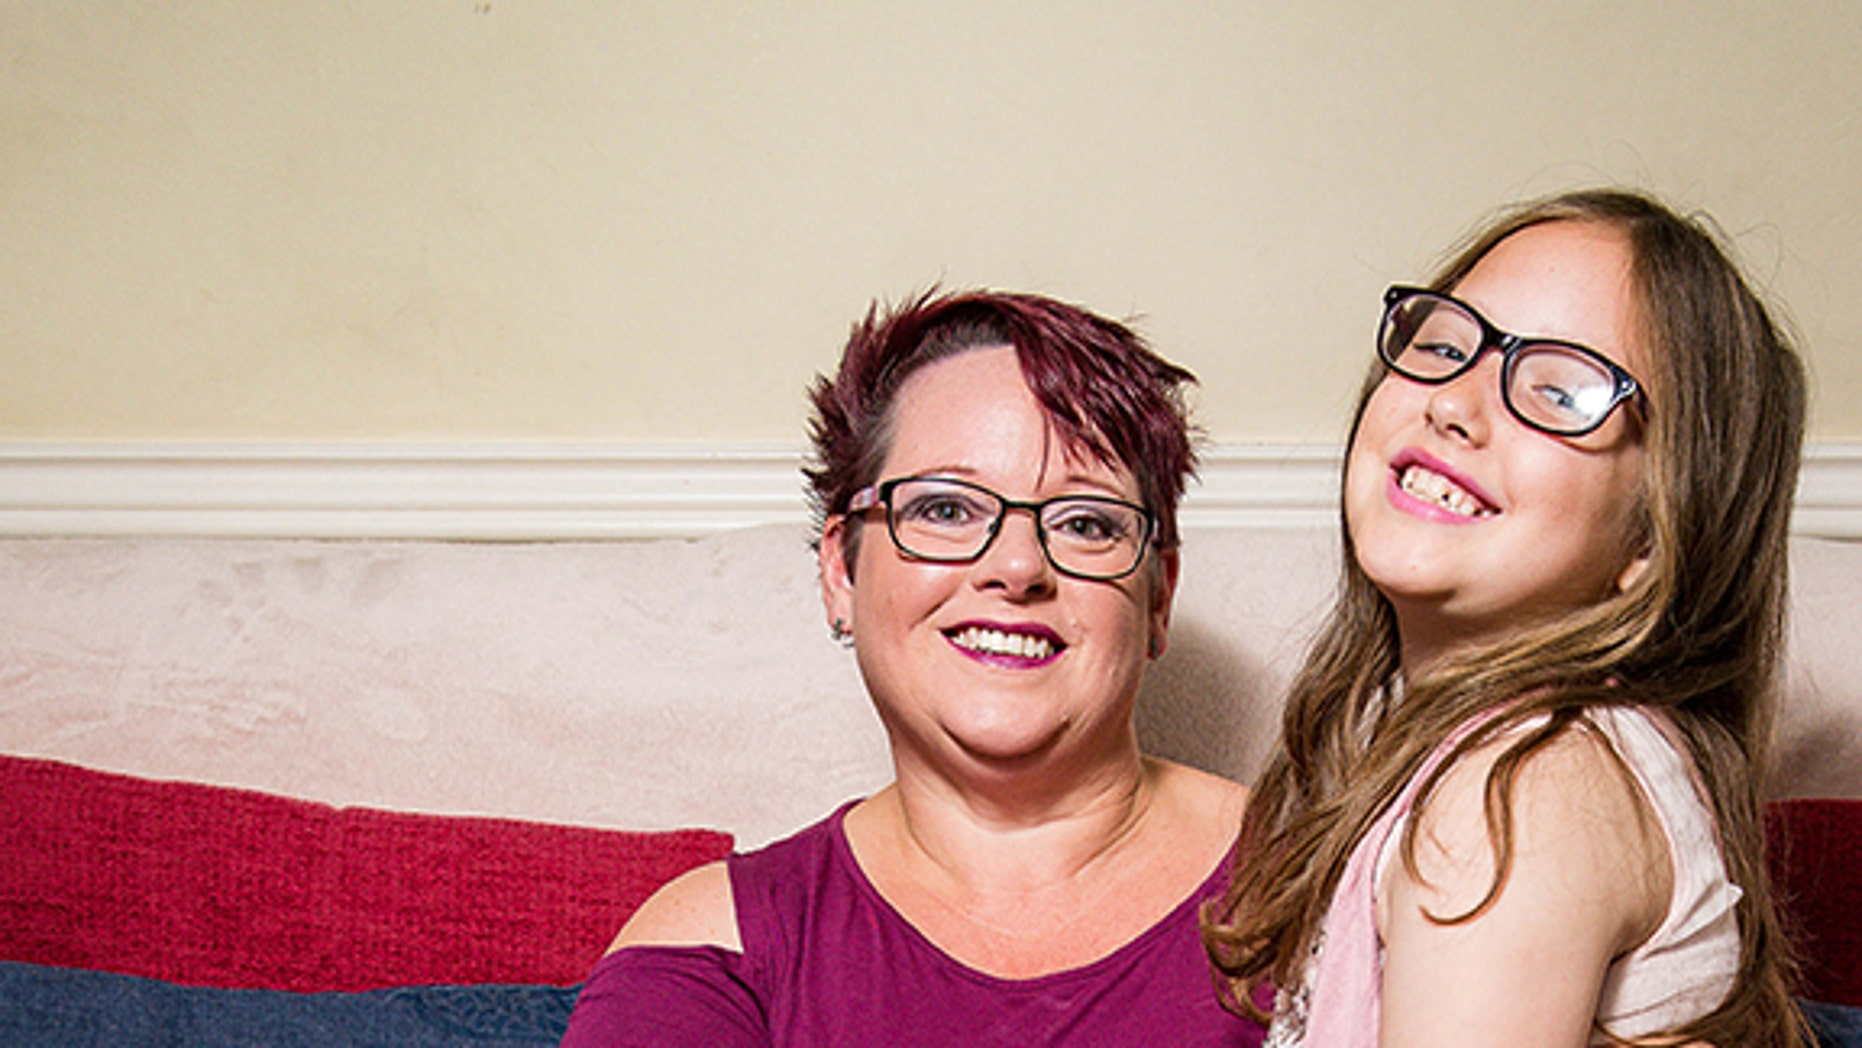 Sharon Spink, 50, pictured with her 9-year-old daughter Charlotte, who she continued to breastfeed until recently.